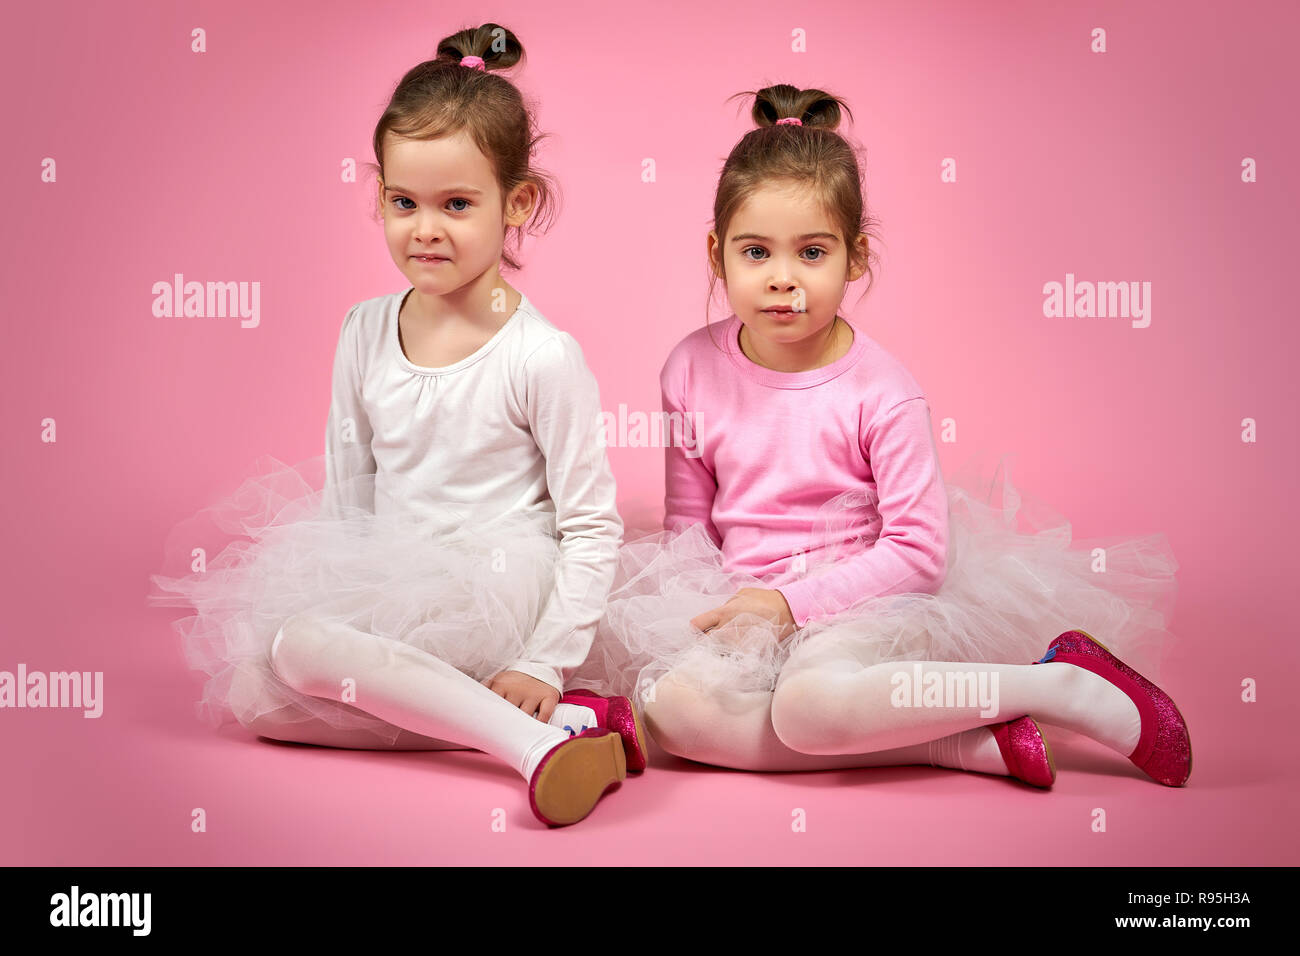 two cute little girls in white tulle skirts on a pink background - Stock Image